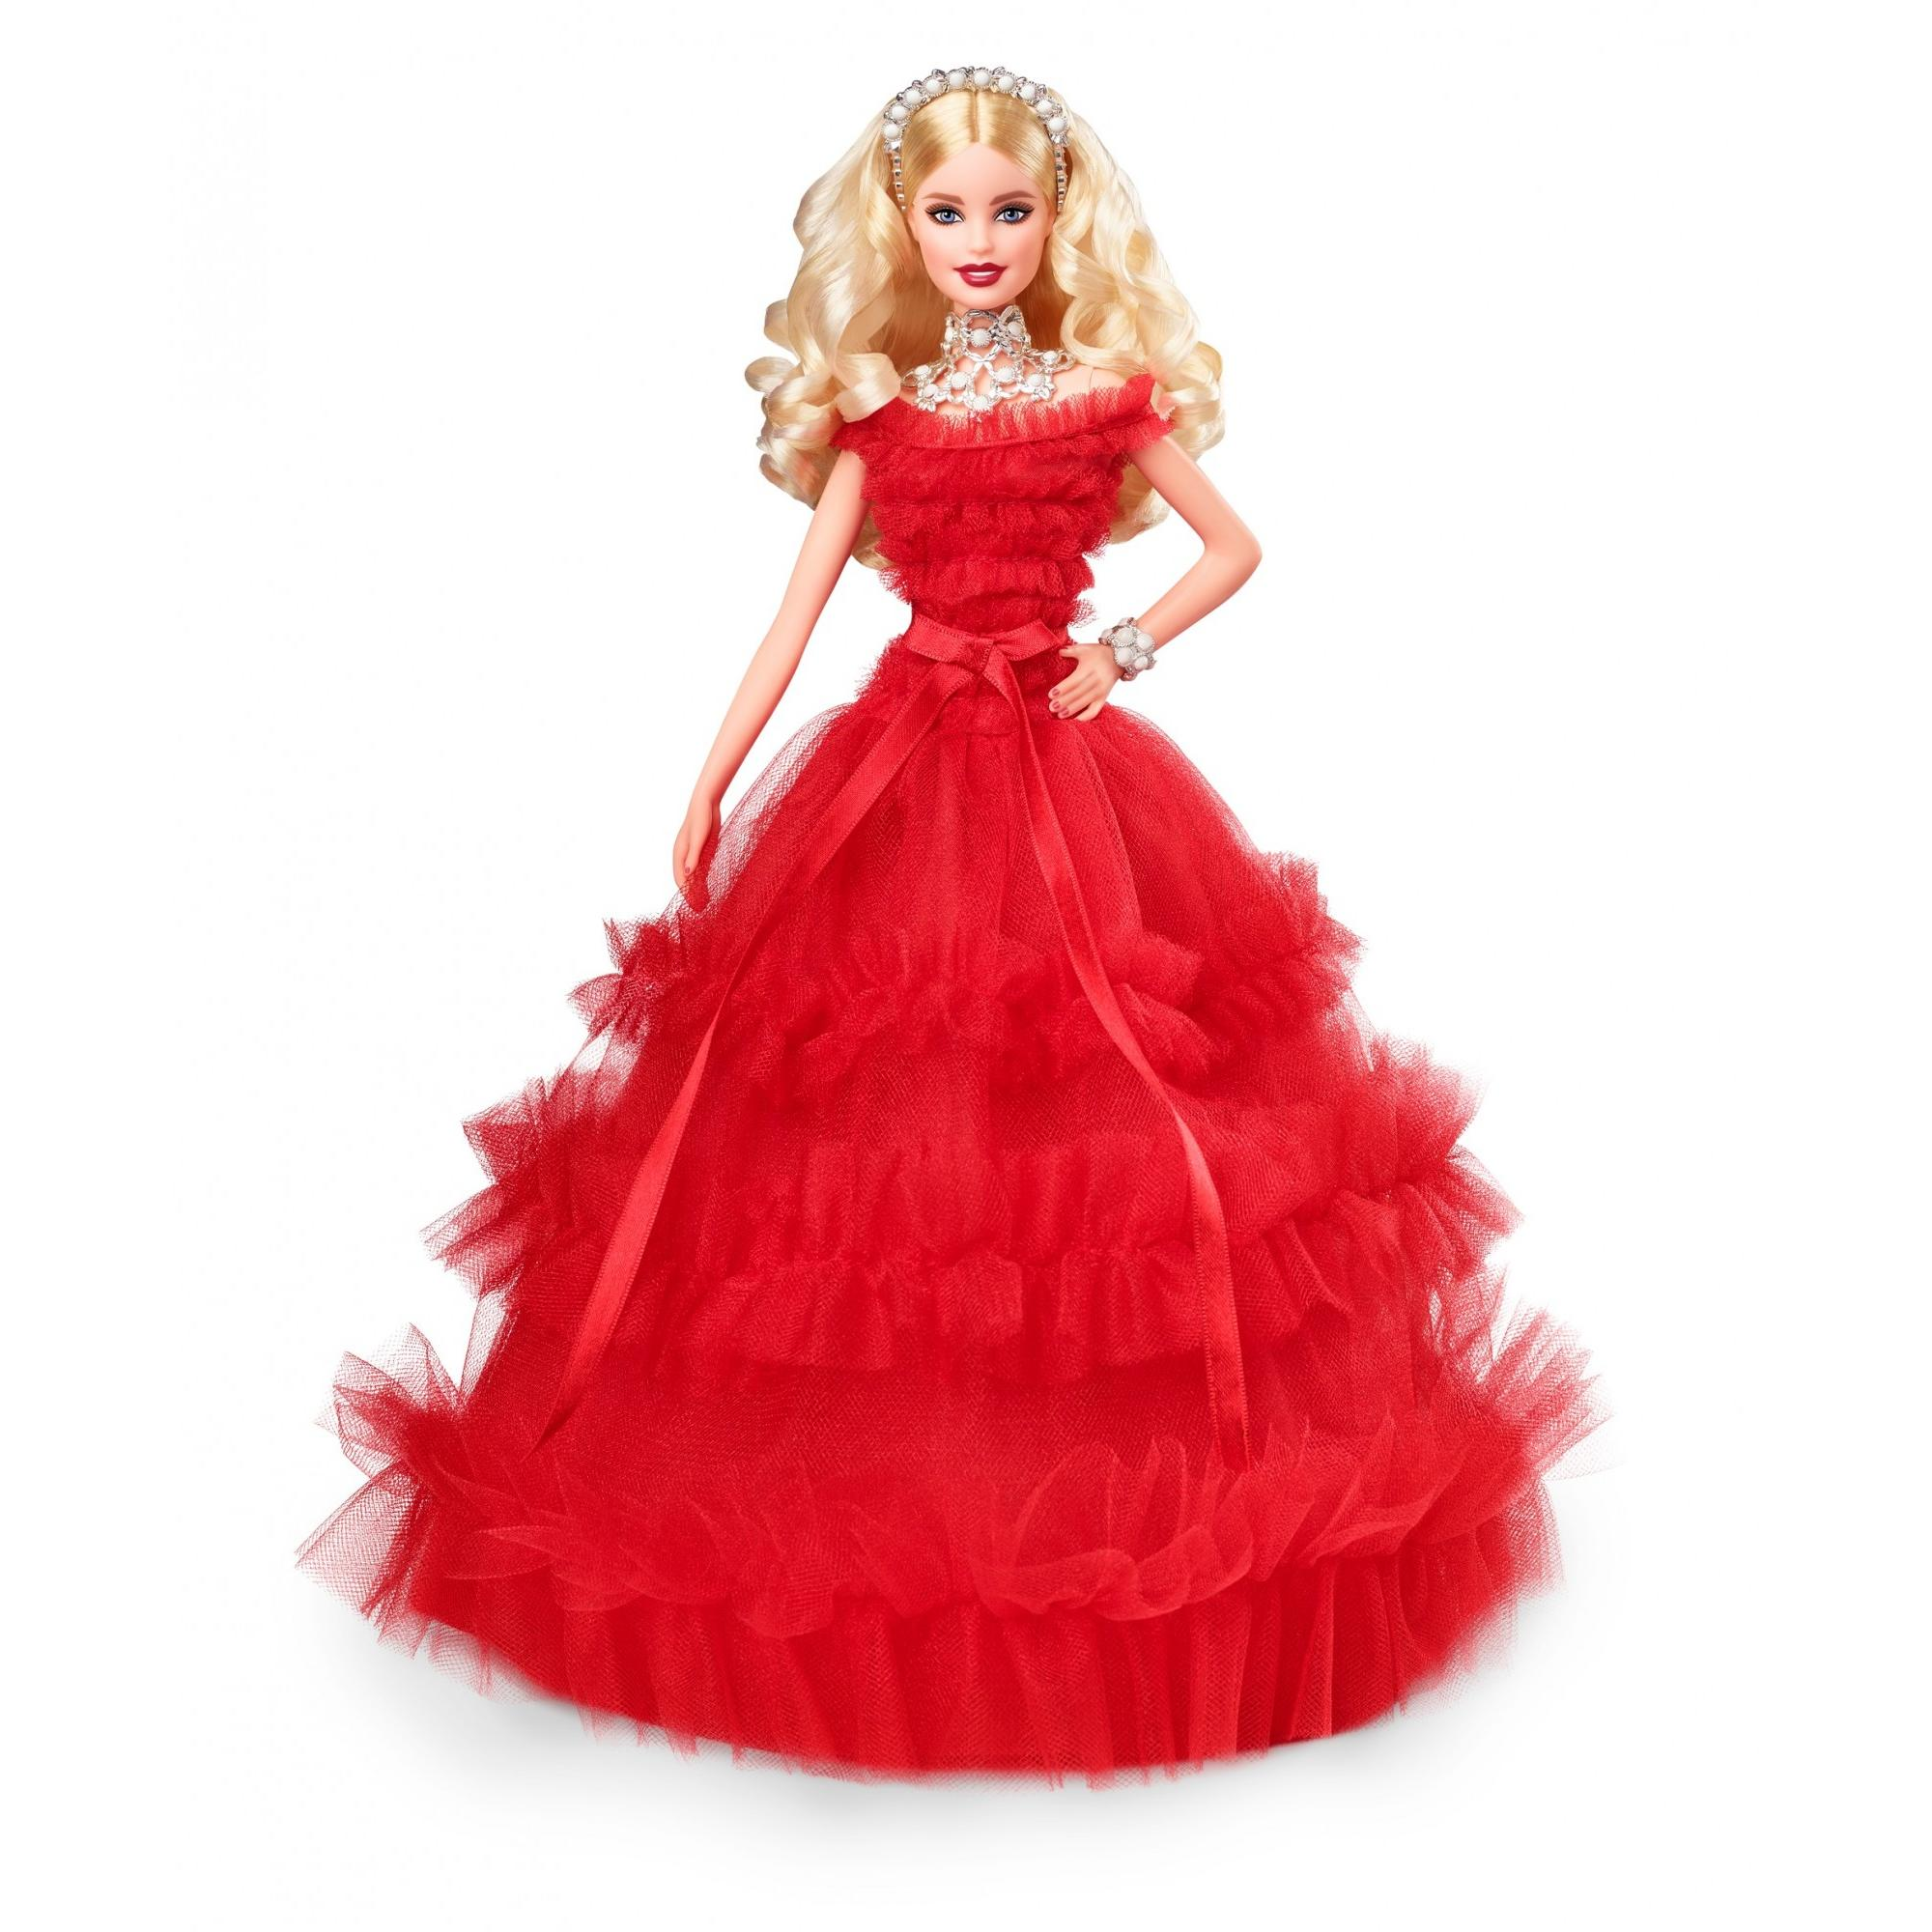 2018 Holiday Collector Barbie Signature Doll with Stand